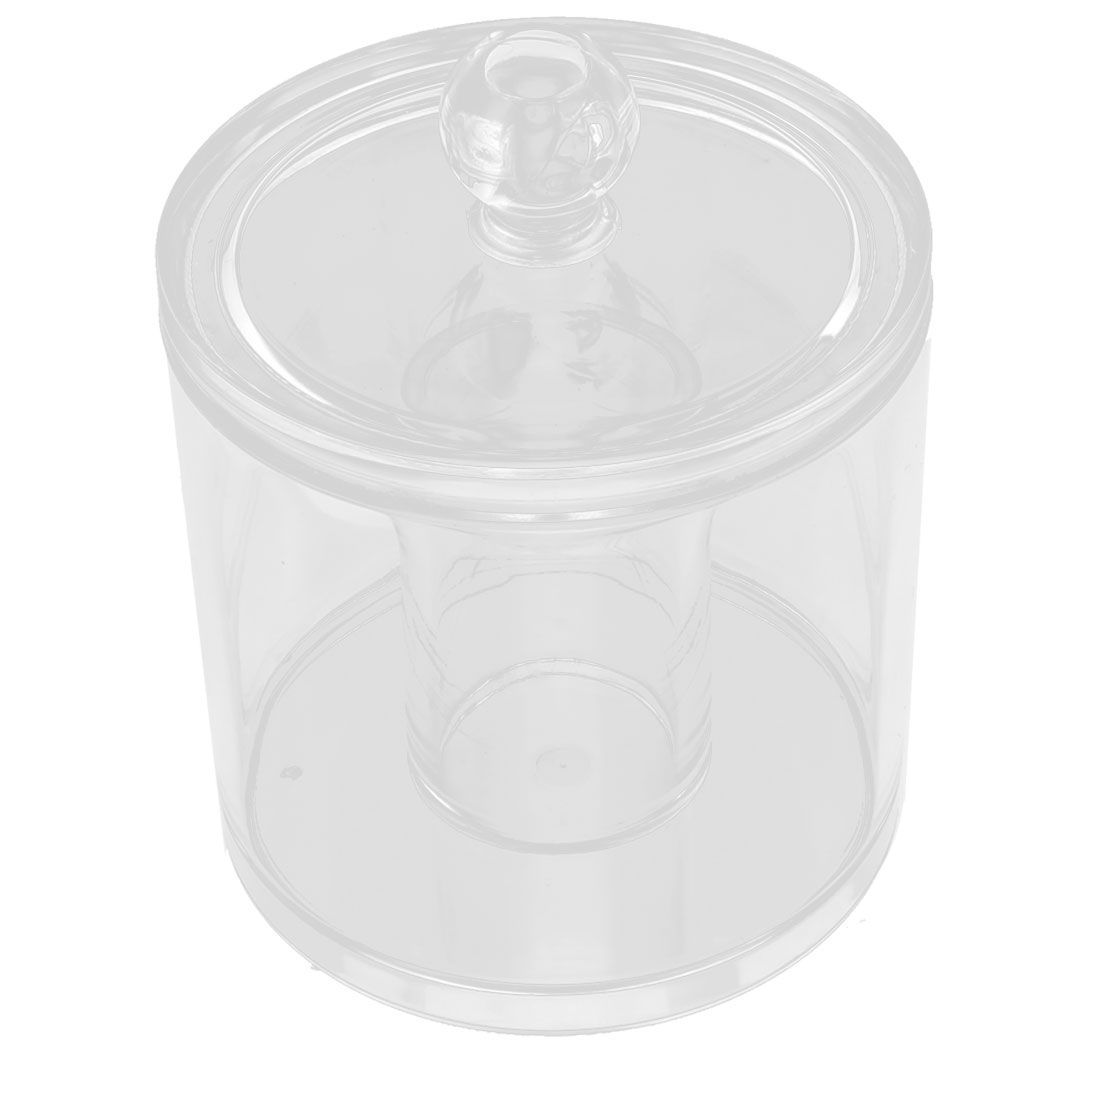 Acrylic Round Shape Cotton Swab Makeup Pencil Holder Jewelry Box Organizer Clear